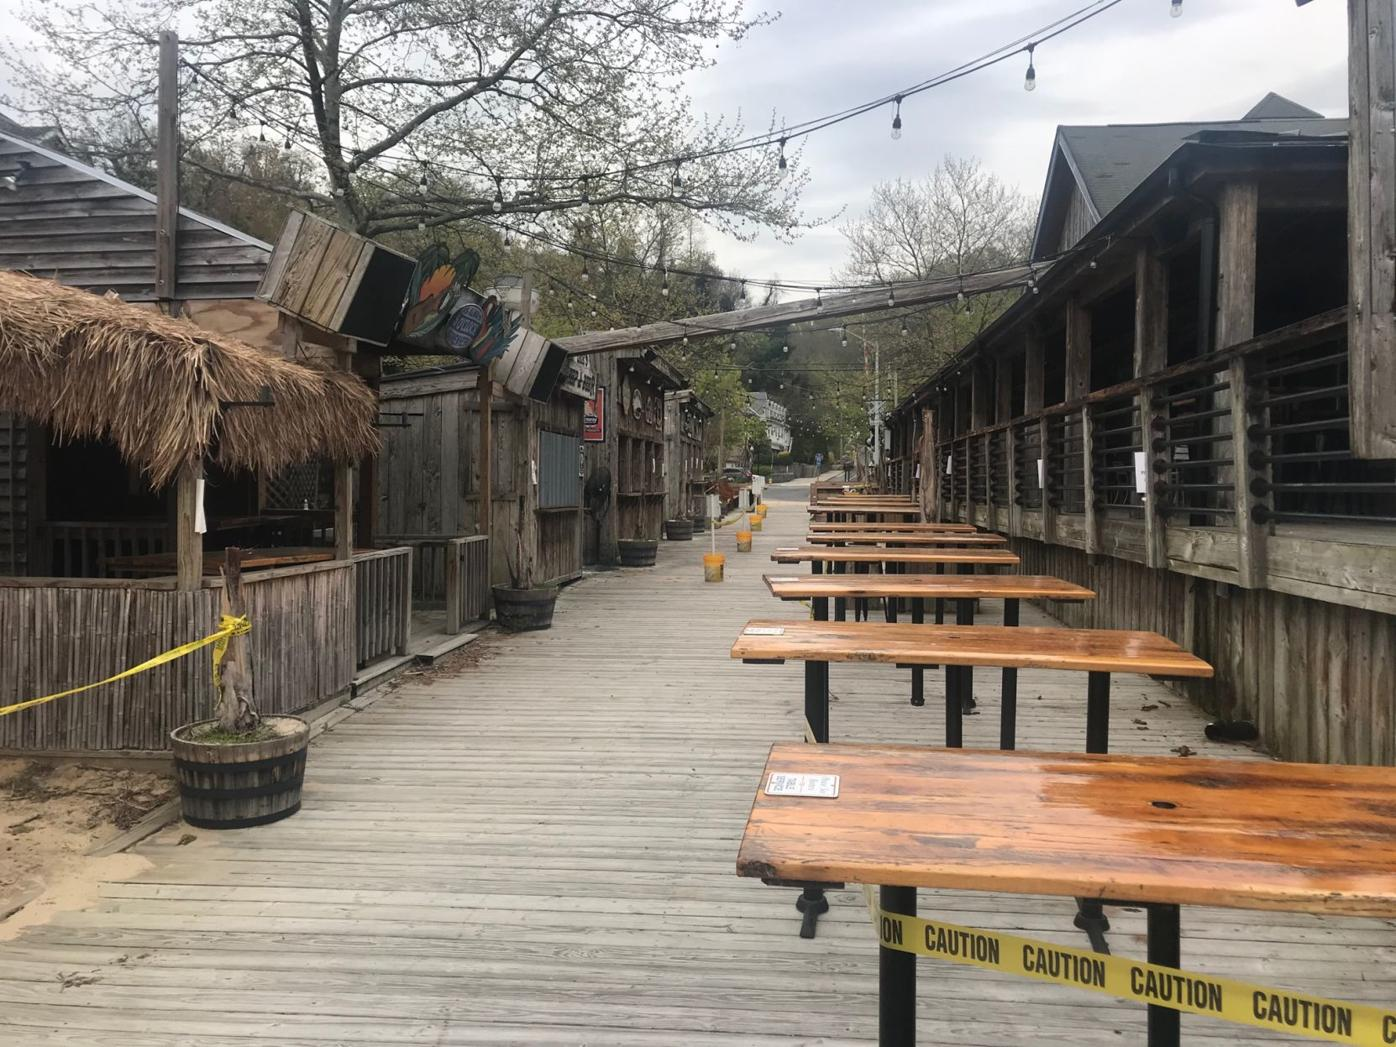 Lee's Landing owner upset about police presence